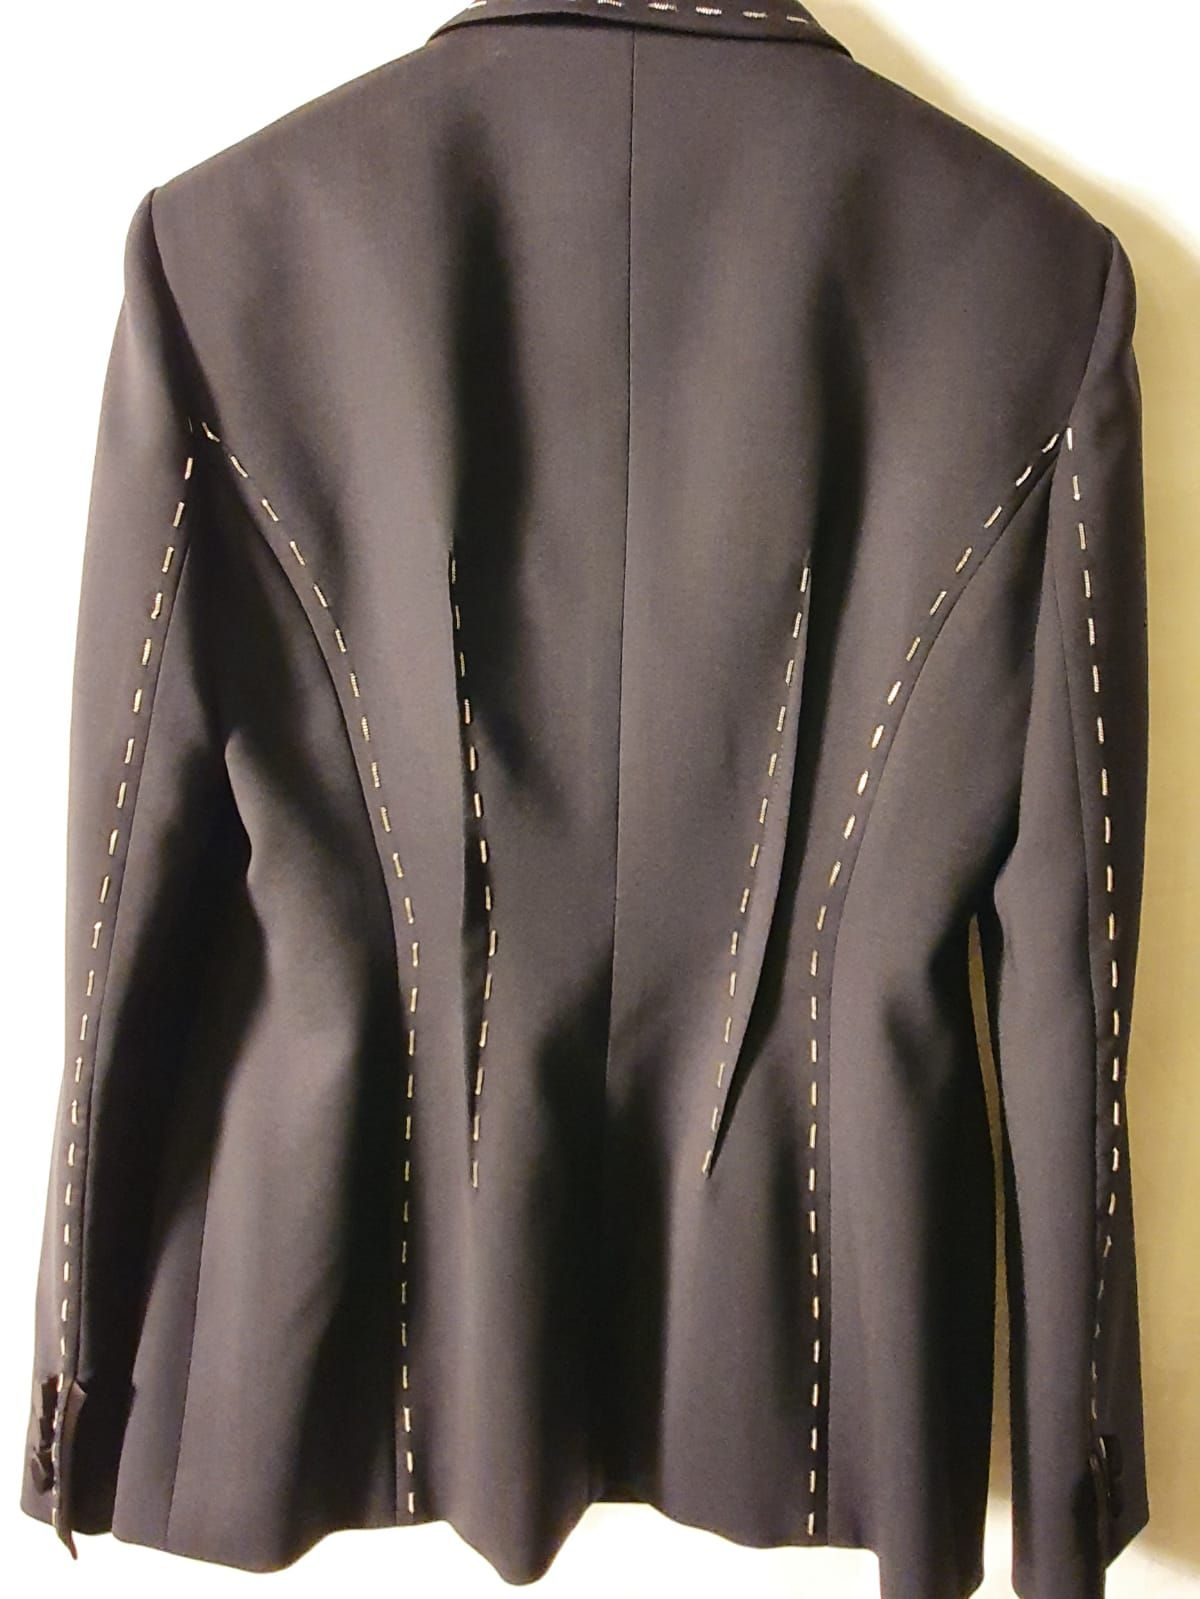 Versace - Jacket with silver stiching